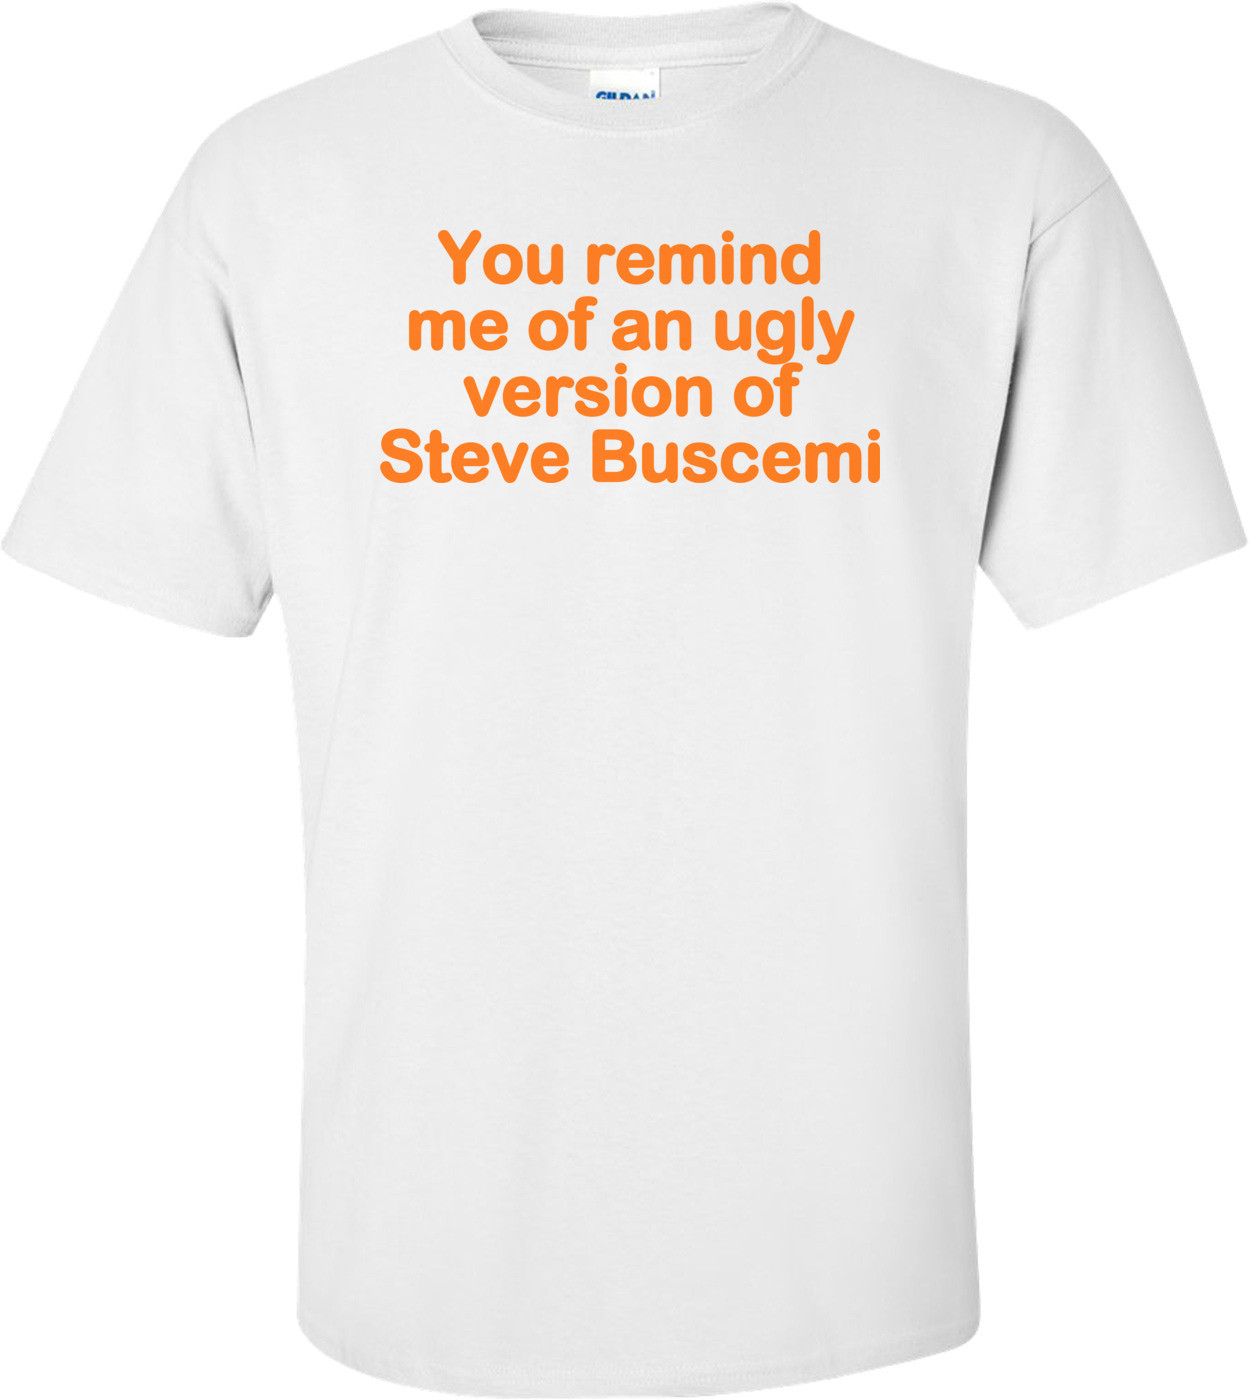 You Remind Me Of An Ugly Version Of Steve Buscemi! - Funny T-shirt